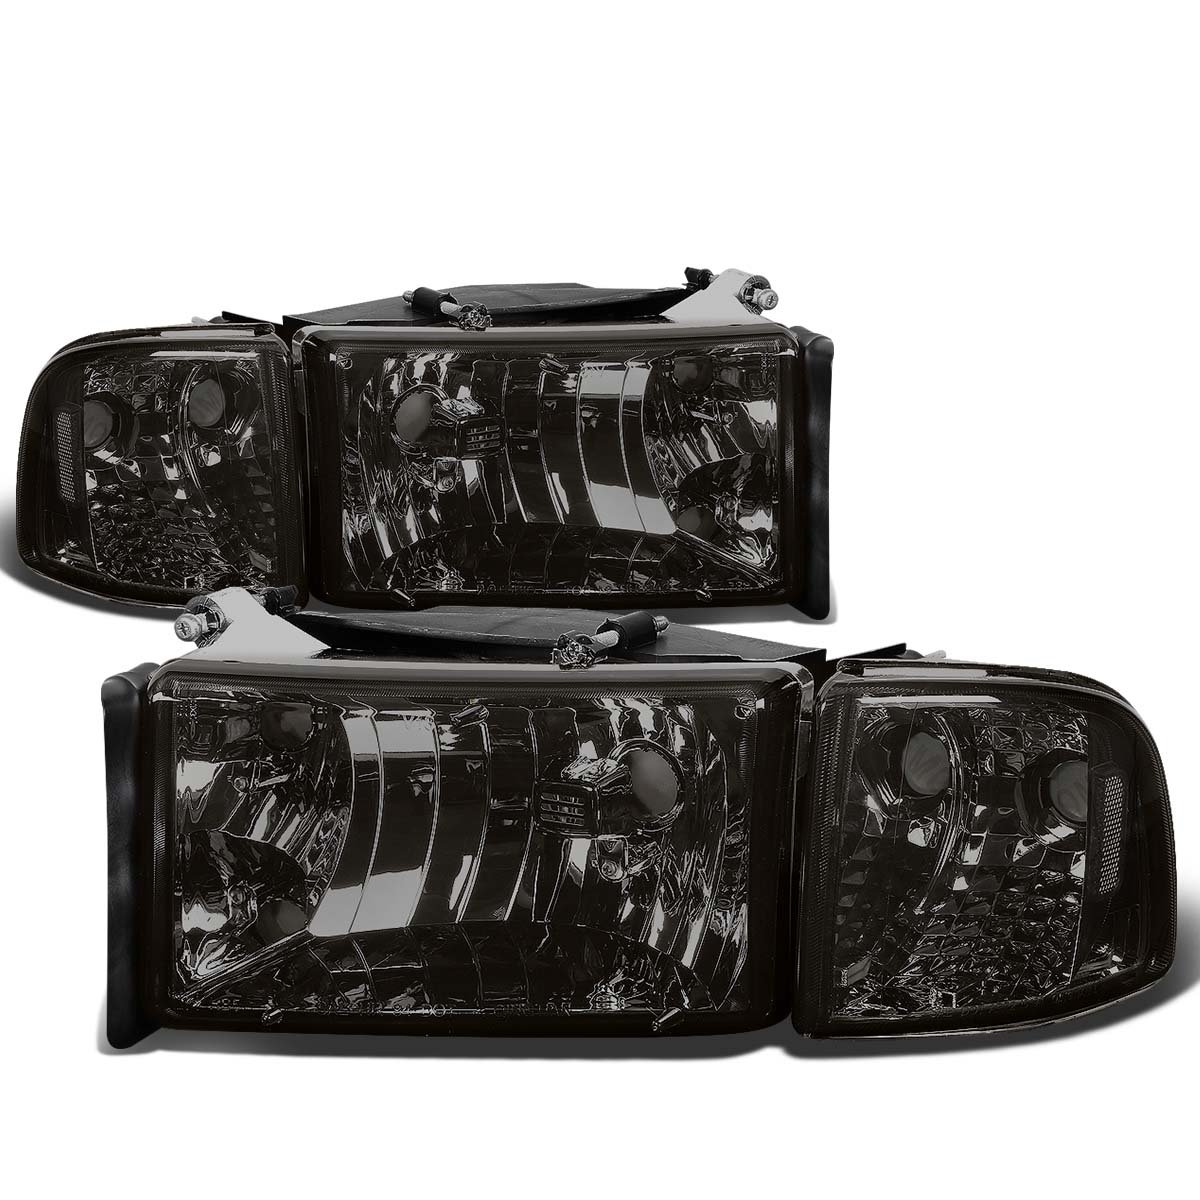 DWVO Headlight Assembly Compatible with 1994-2001 Dodge Ram 1500//94-02 Dodge Ram 2500 3500 Replacement OE Projector Headlamp,Black Housing with Corner Lamps